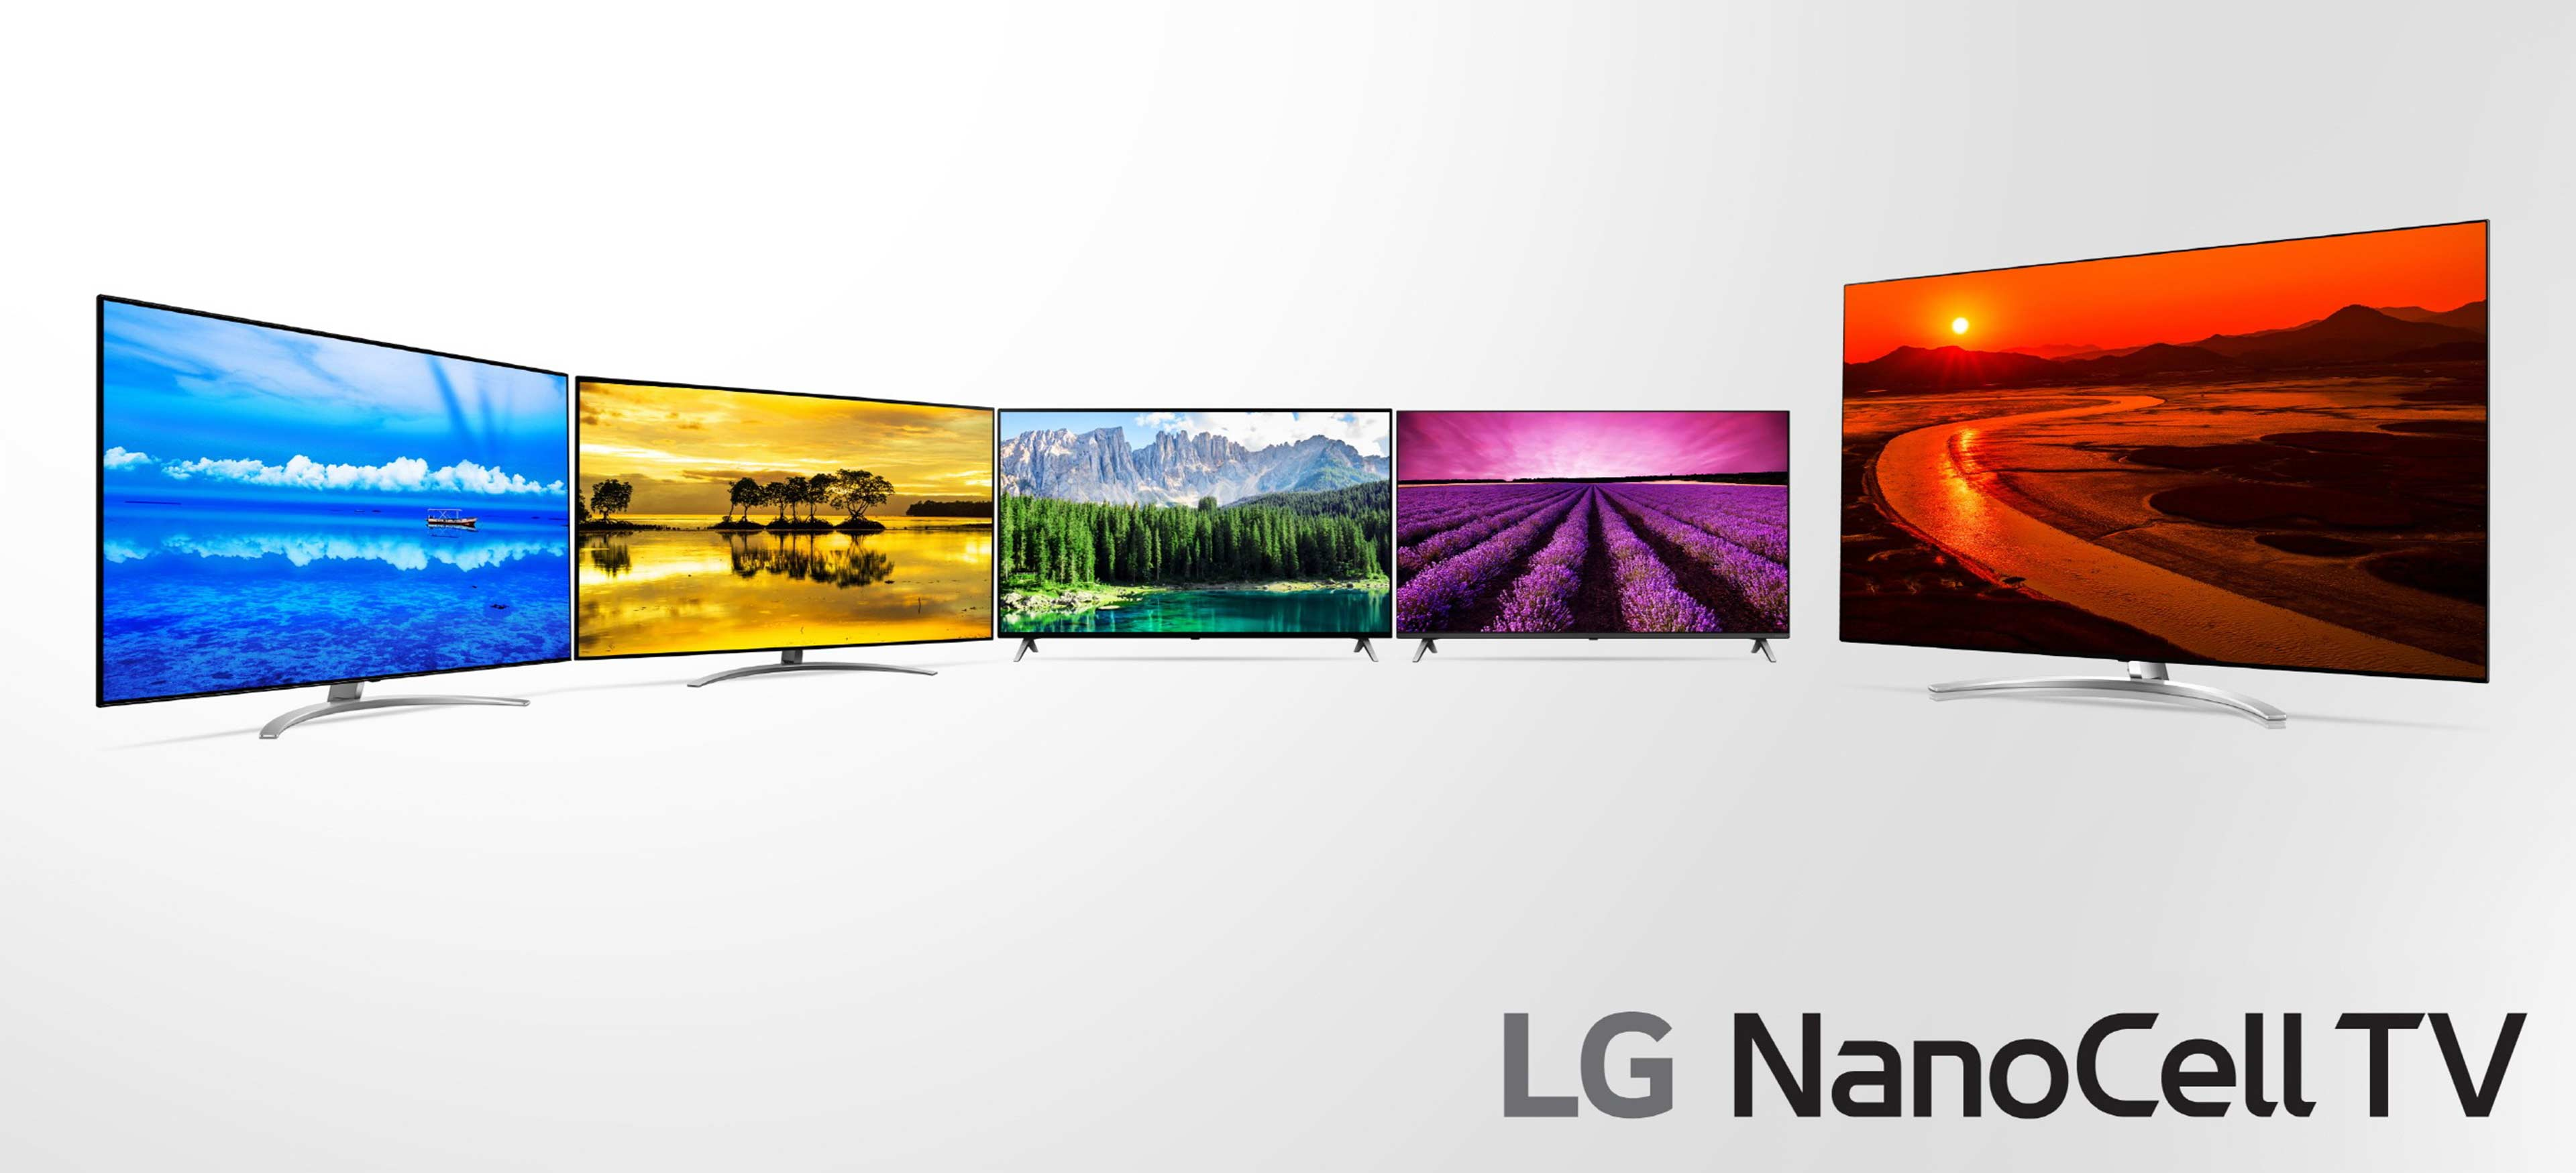 LG's 2019 TV lineup is now available in Canada